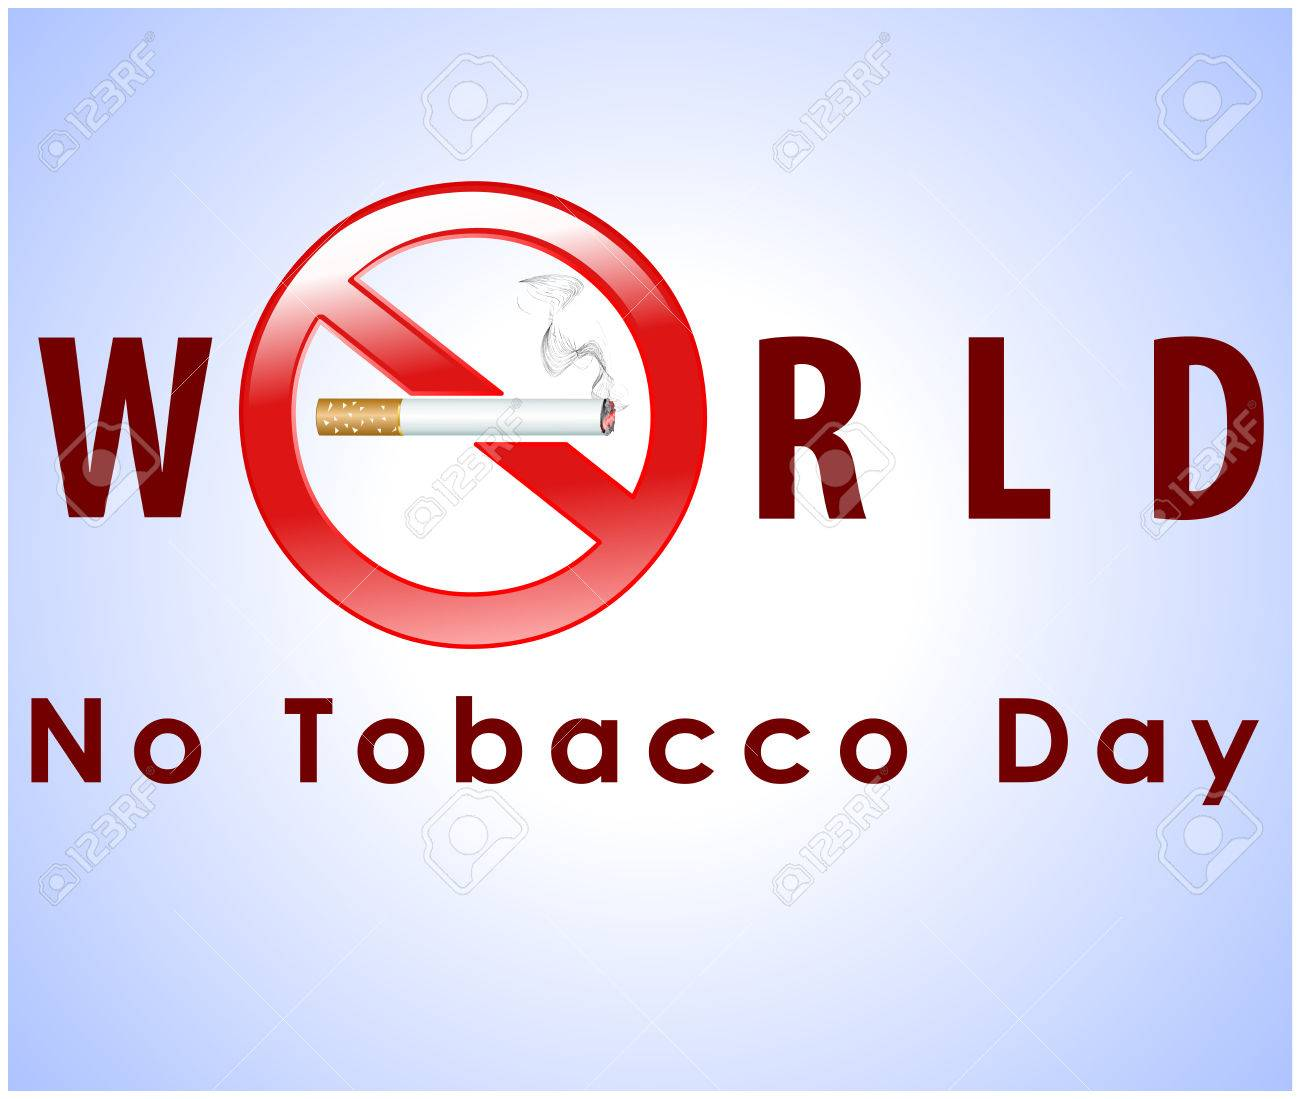 No Tobacco Day Poster No Smoking Banner Or Flyer Design With Royalty Free Cliparts Vectors And Stock Illustration Image 38471299